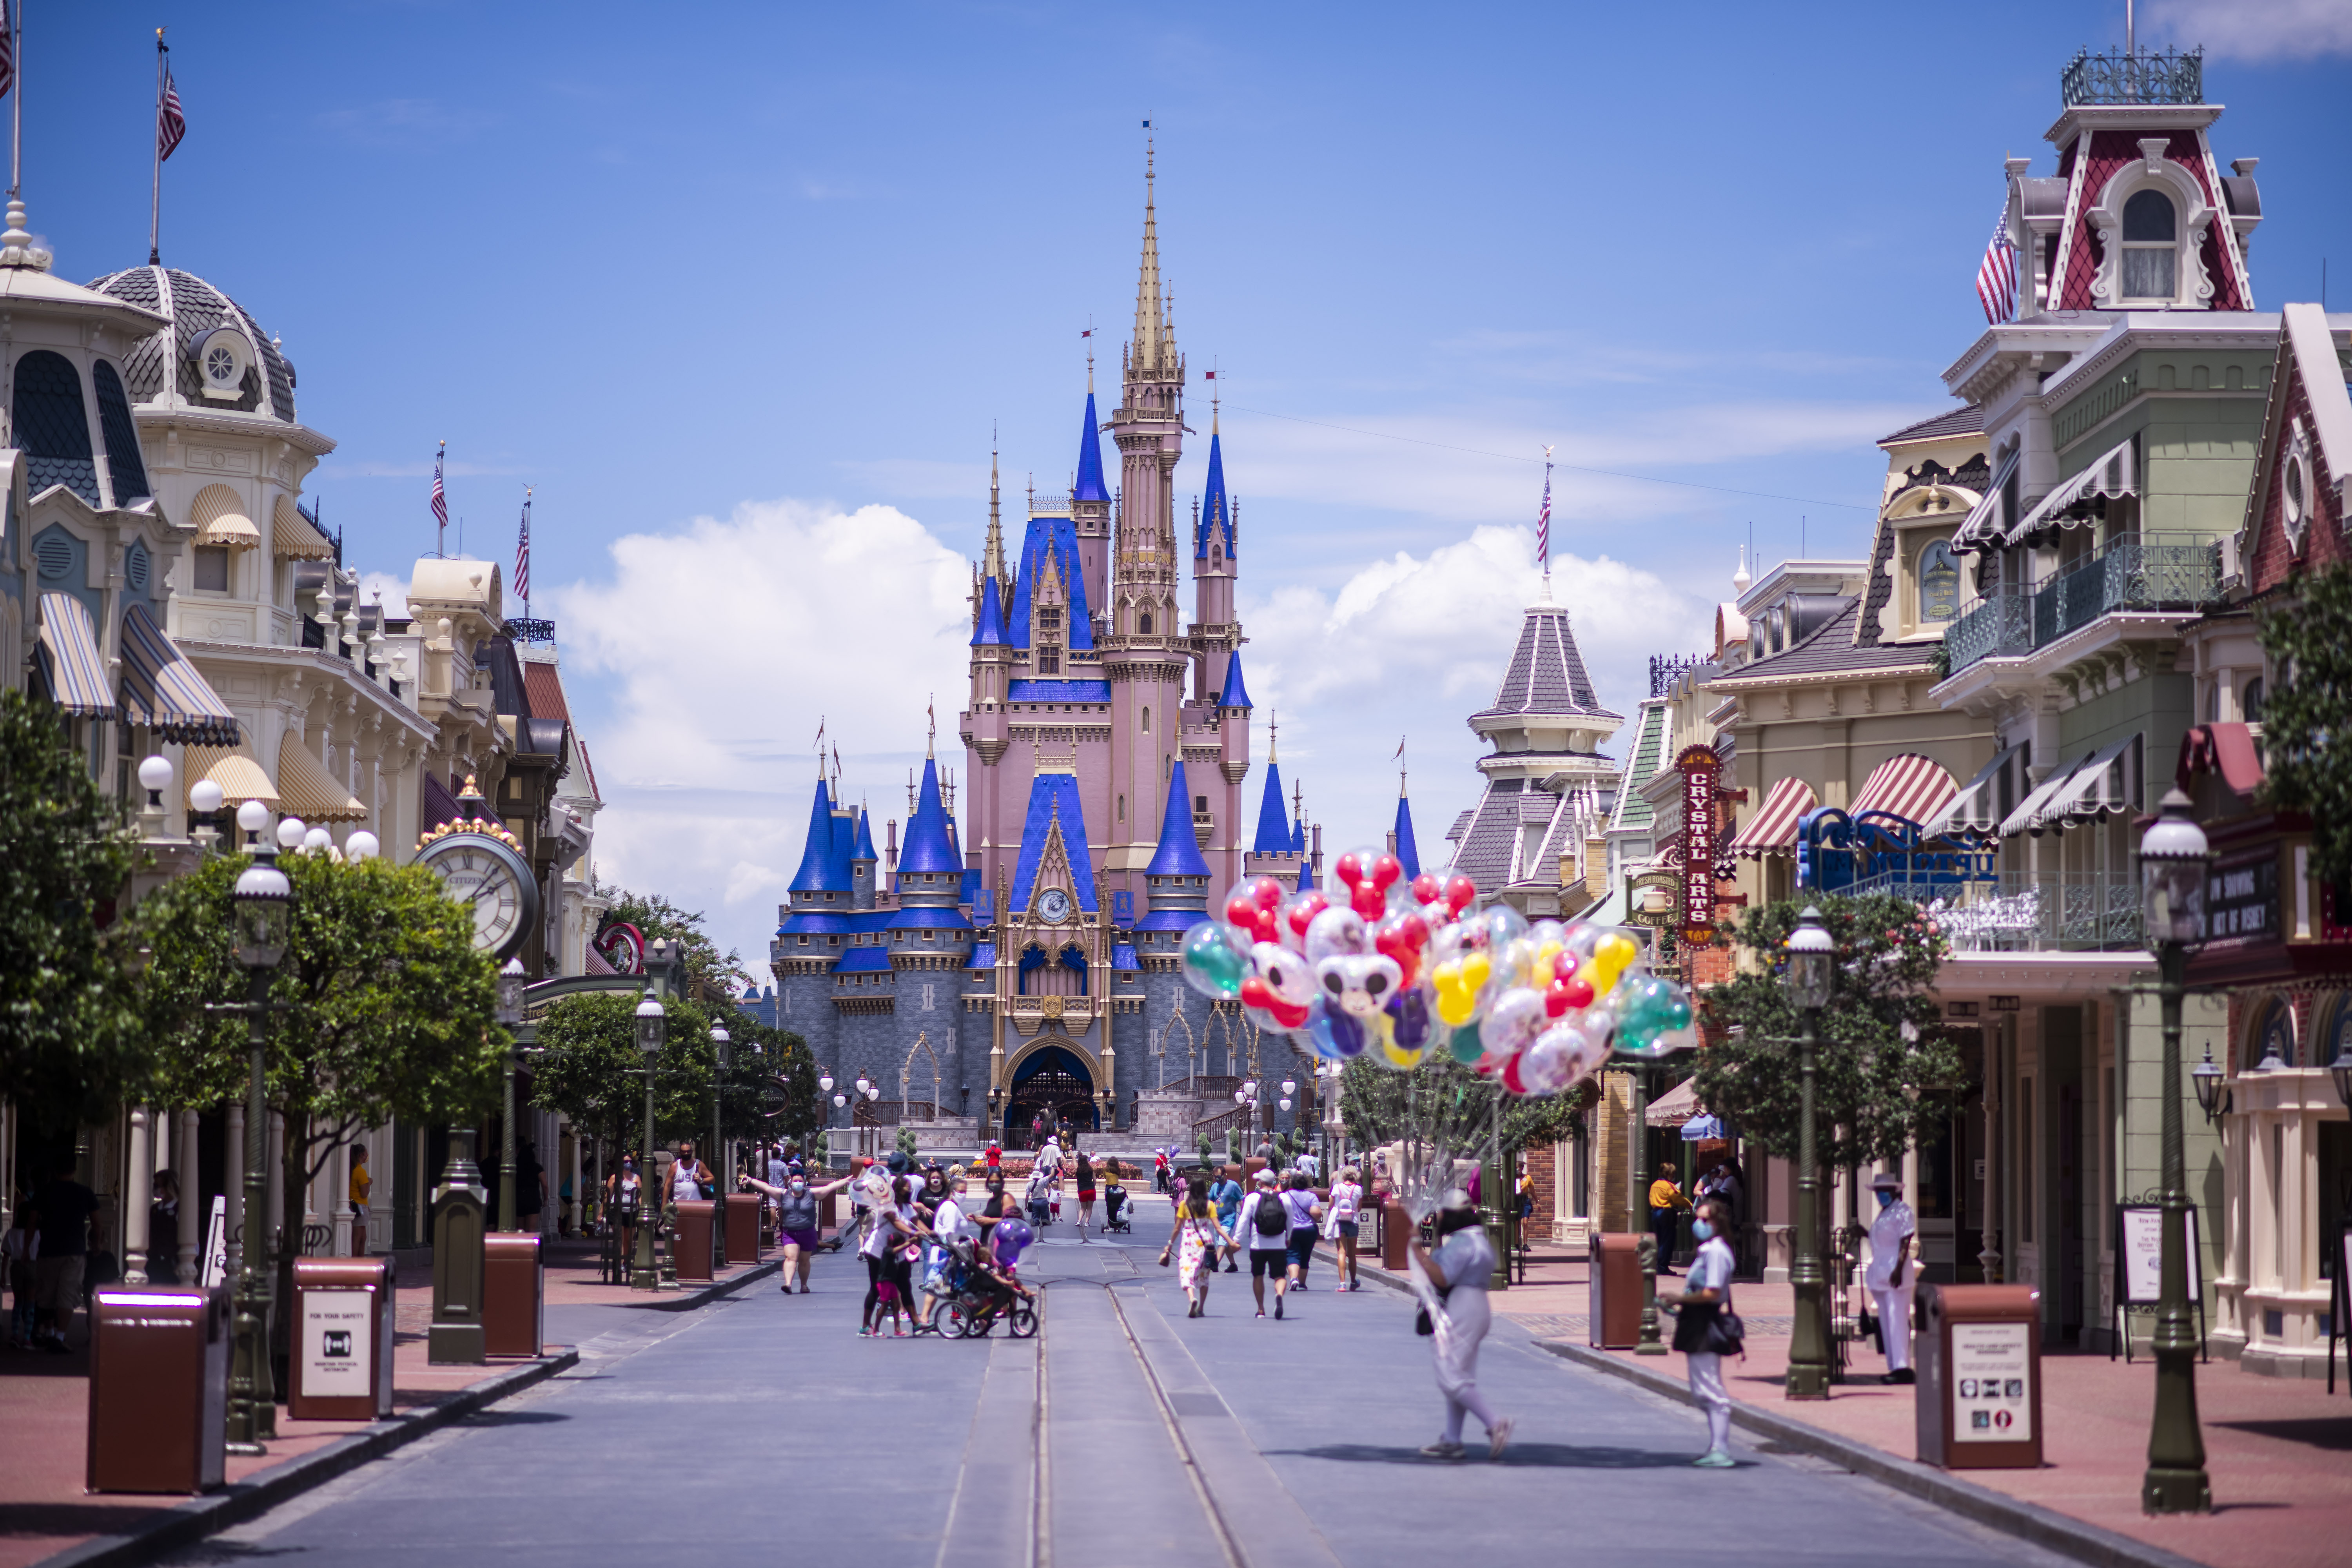 Disney gets its own hub in Apple Music full of soundtracks and playlists